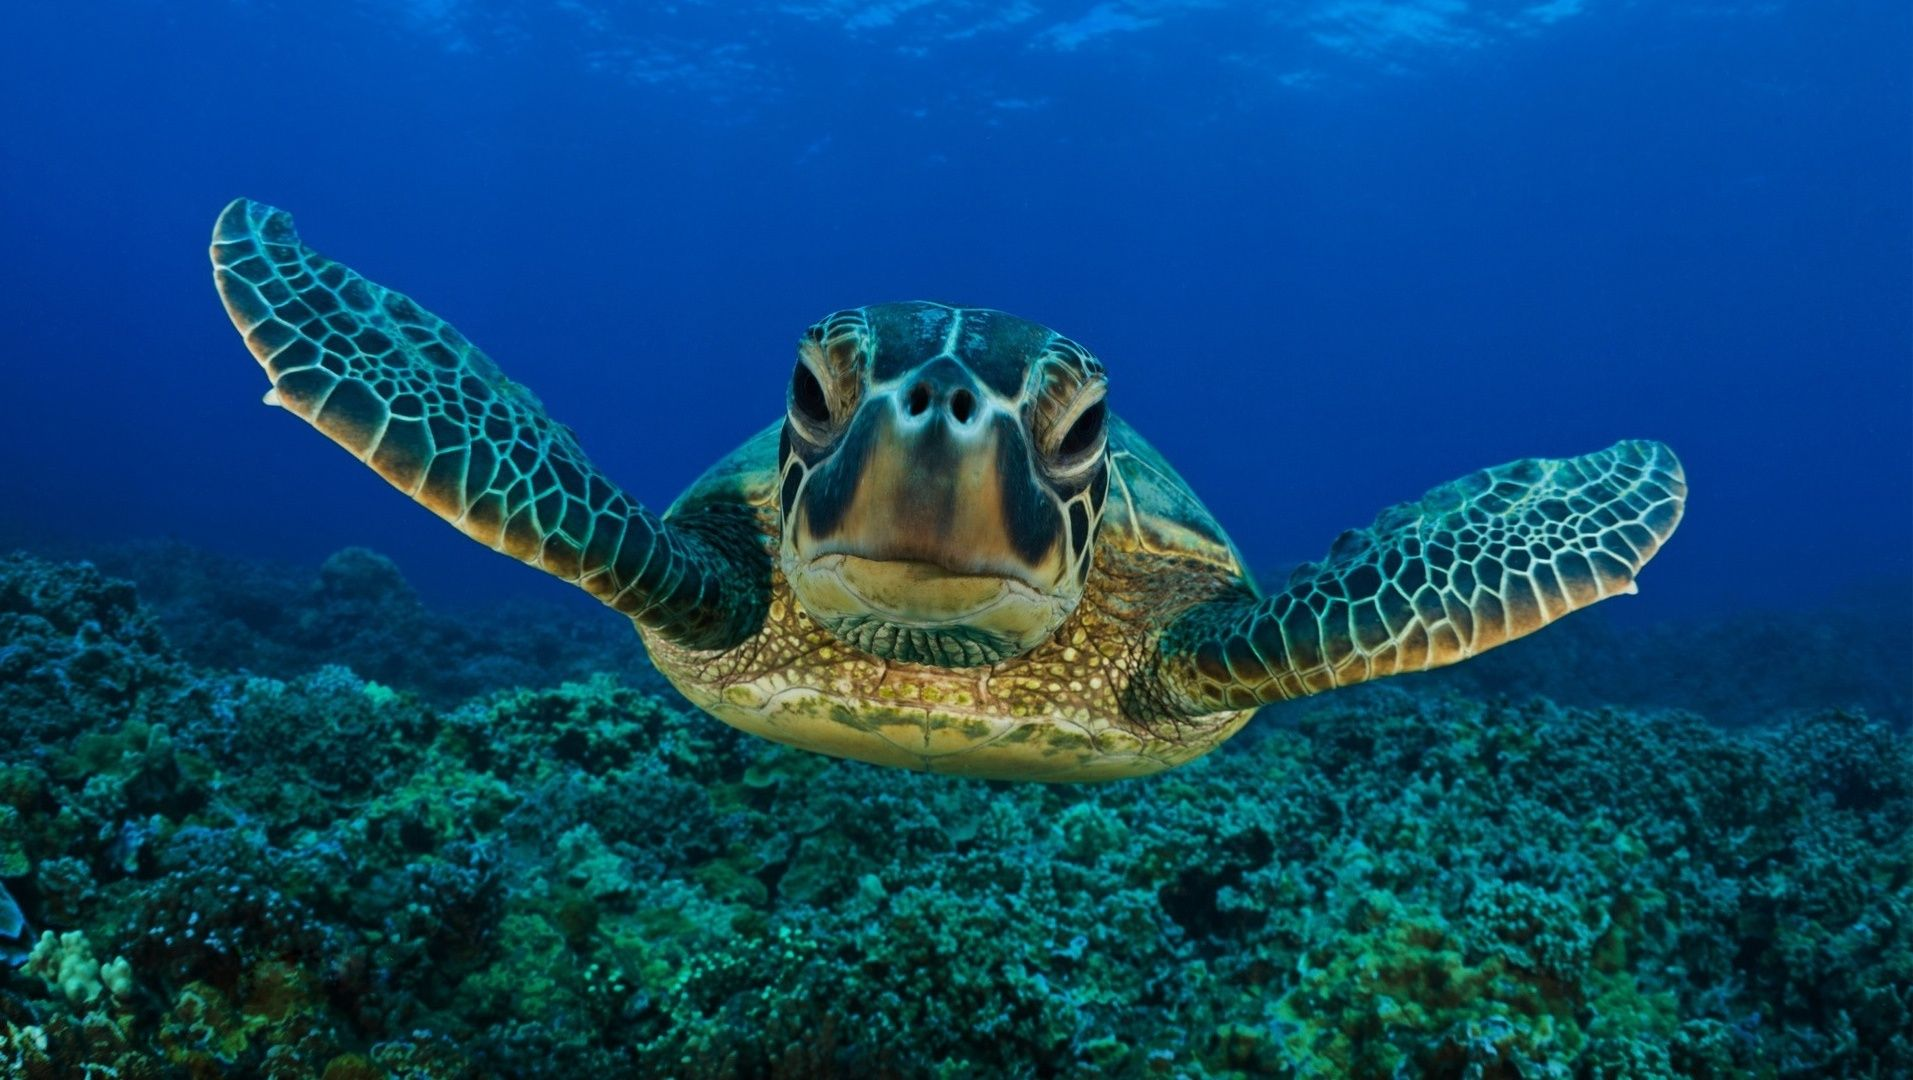 Turtle Swimming Wallpaper Photos #155i0c 1913x1080 px 489.06 KB ...